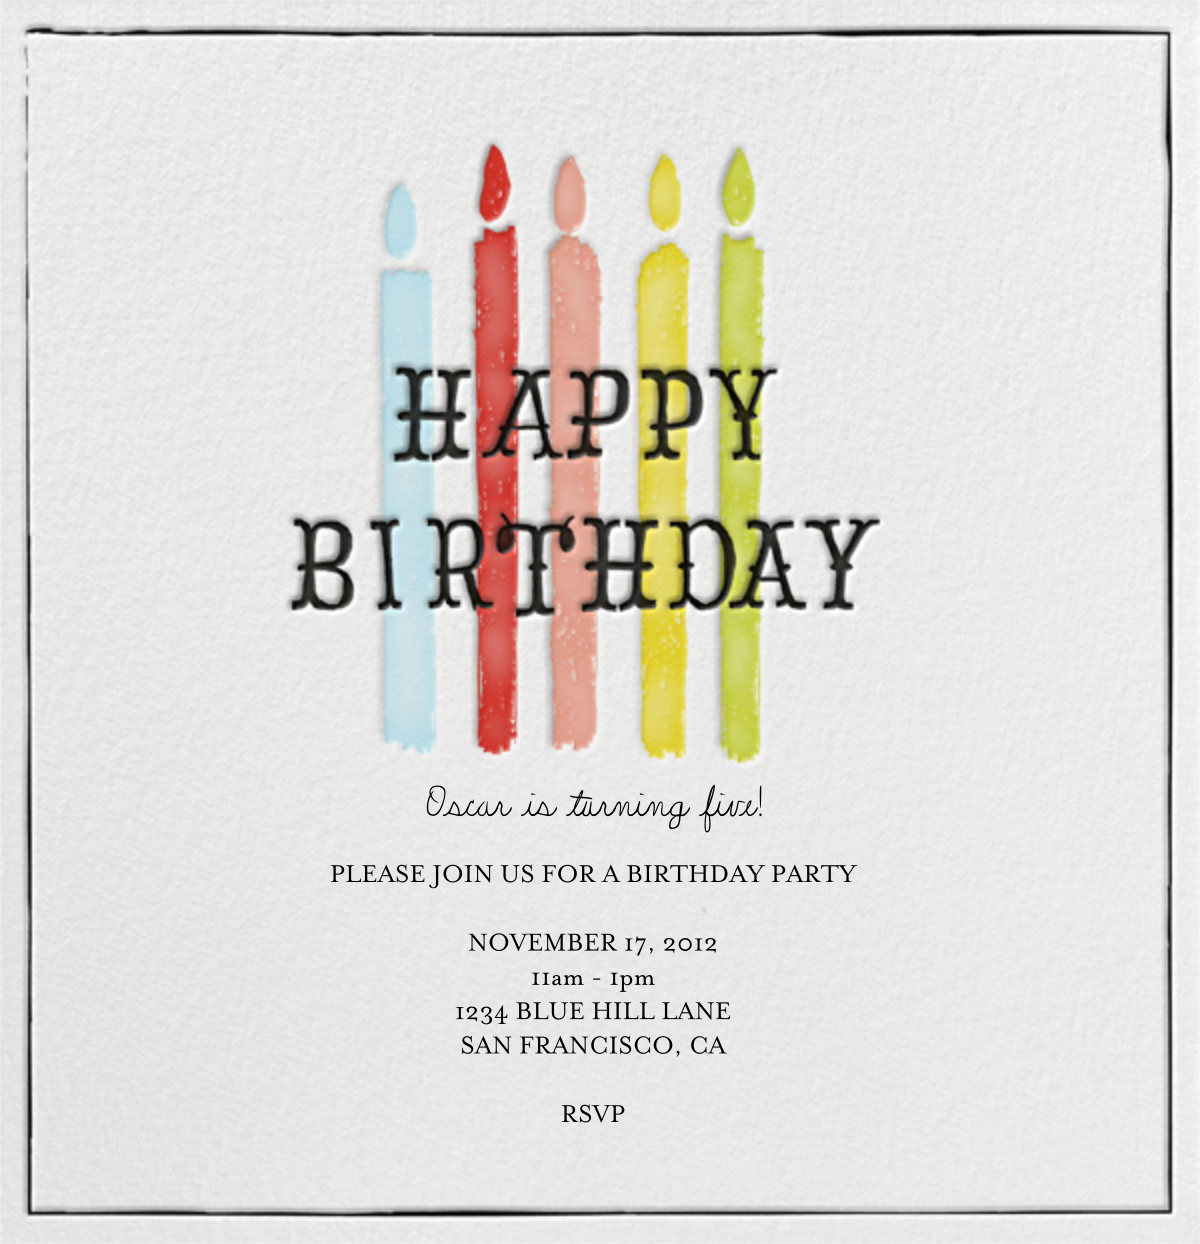 Blow Out the Candles - Five - Mr. Boddington's Studio - Kids' birthday